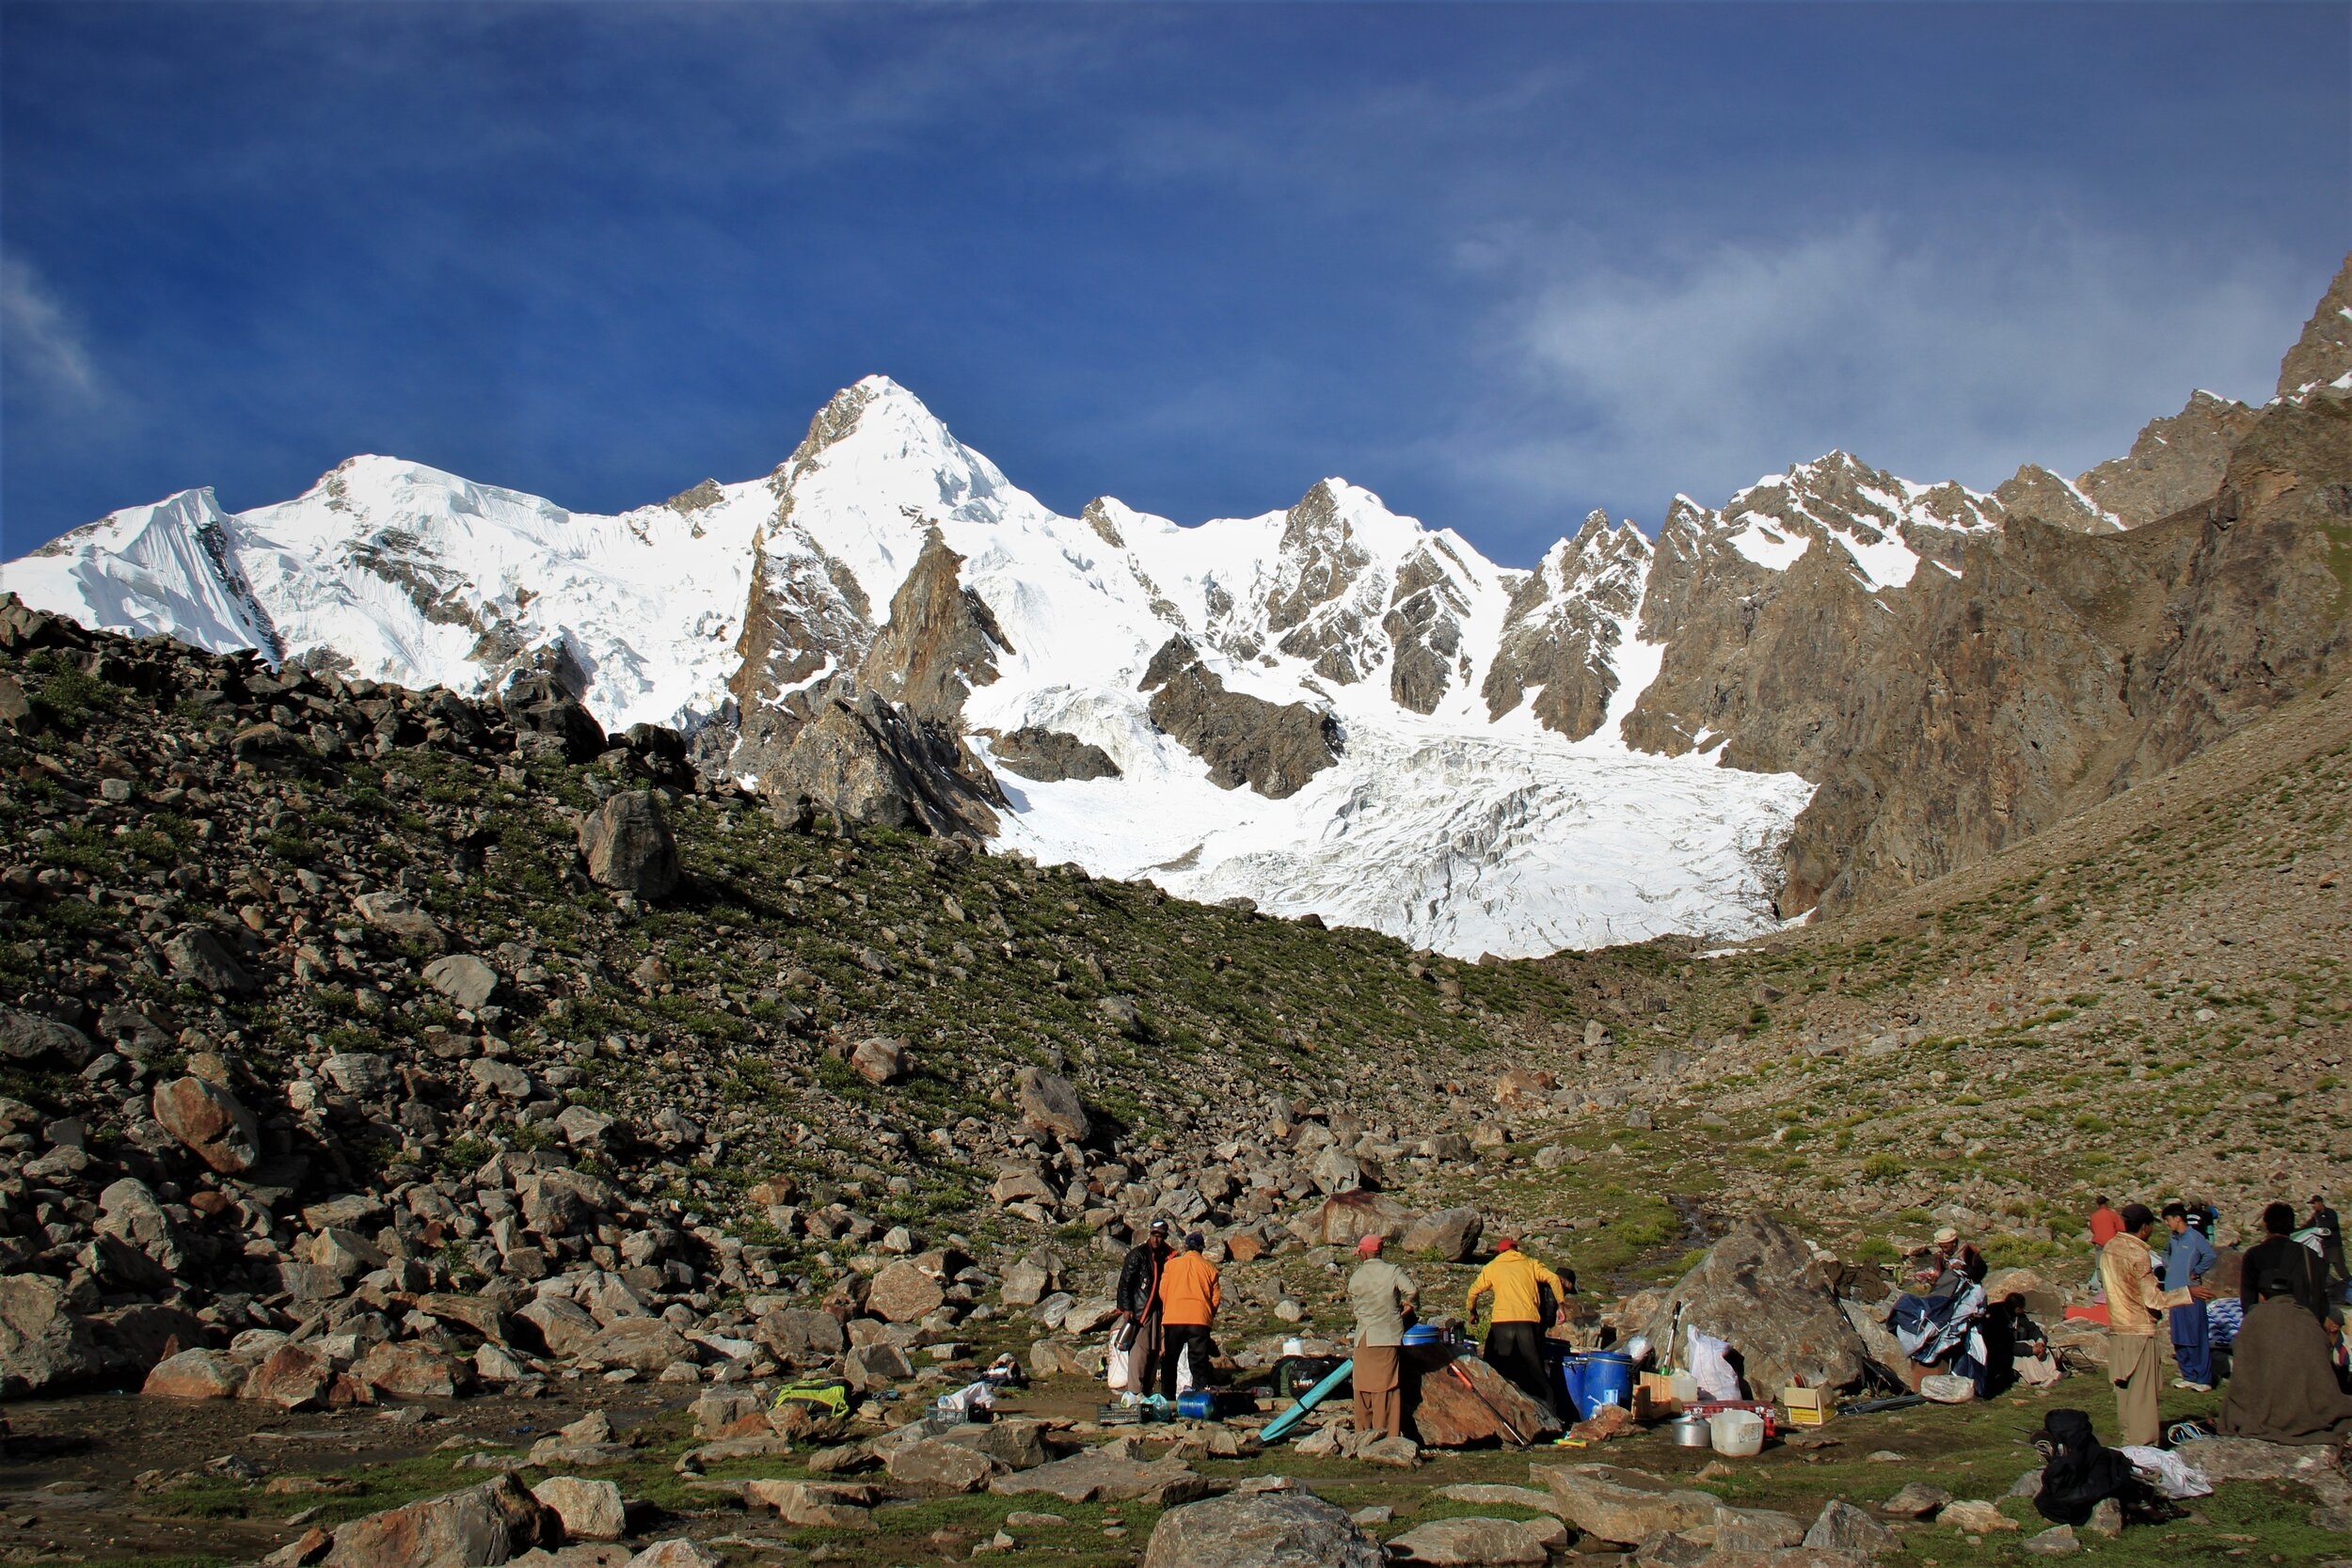 Packing up camp - Bondit stands serenely above - the unknown peak off to the right.